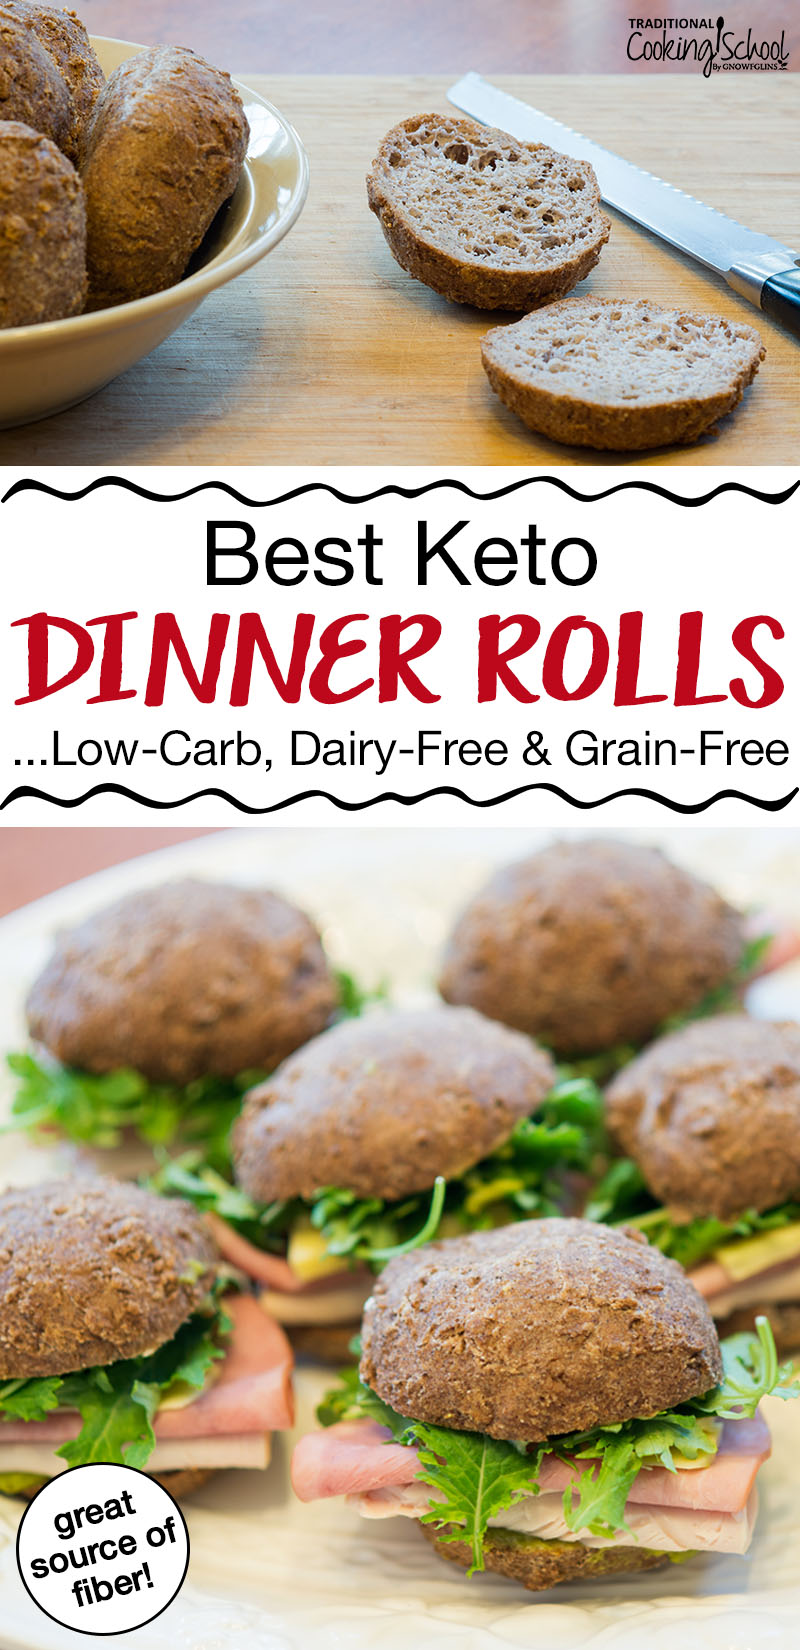 "photo collage of small rolls turned into mini sandwiches with text overlay: ""Best Keto Dinner Rolls...Low-Carb, Dairy-Free & Grain-Free"""